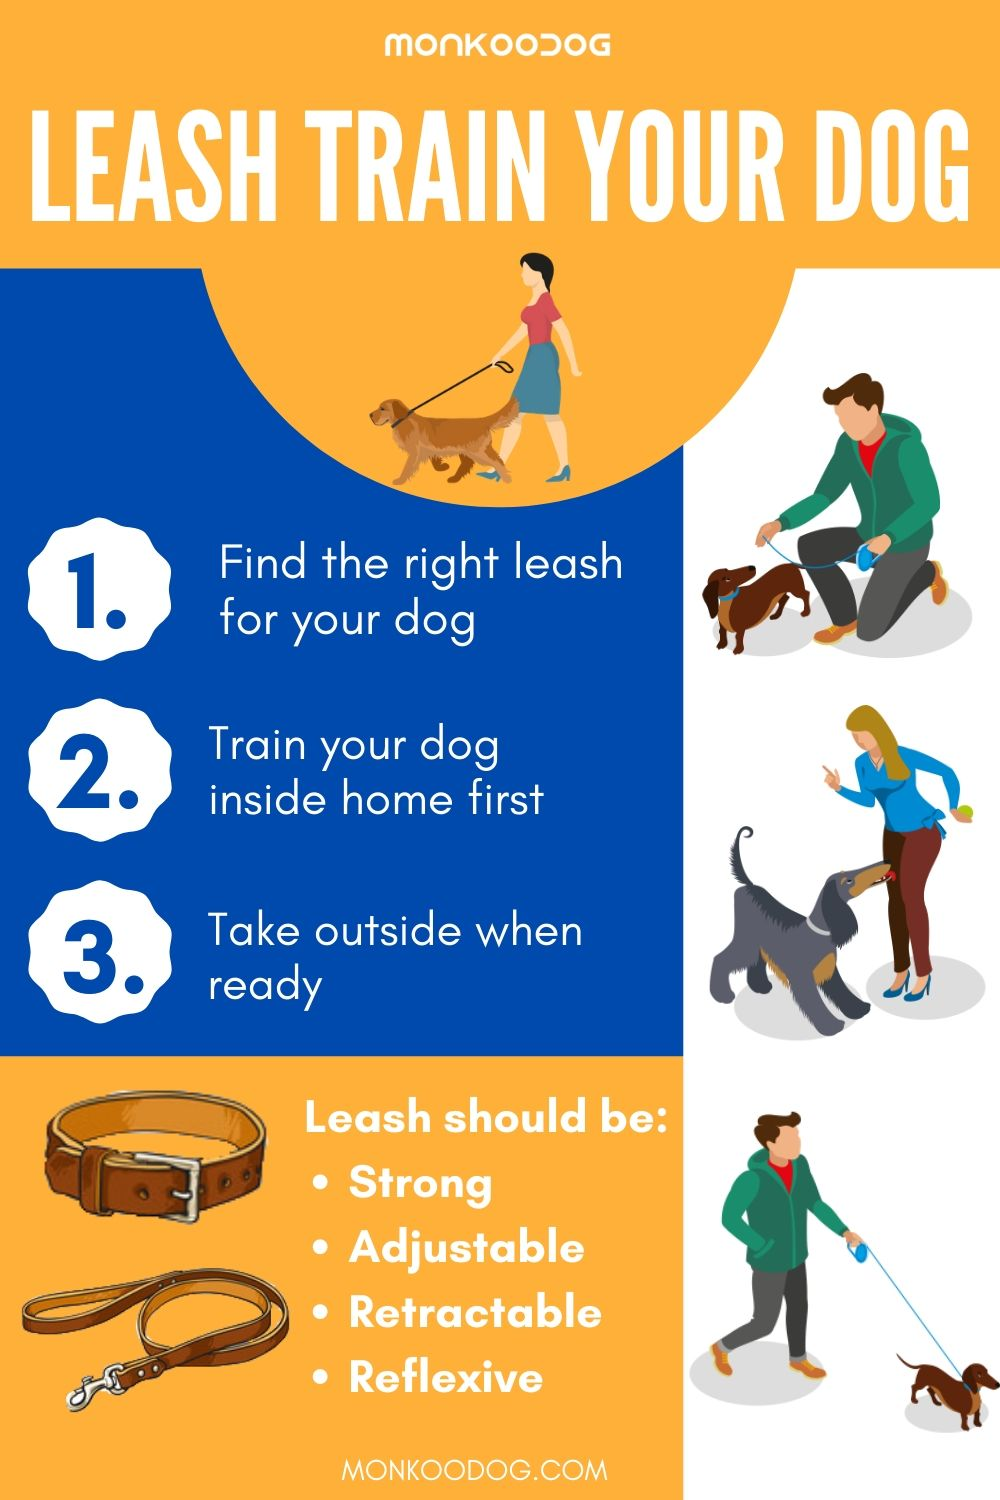 EASY STEPS TO LEASH TRAIN YOUR DOG